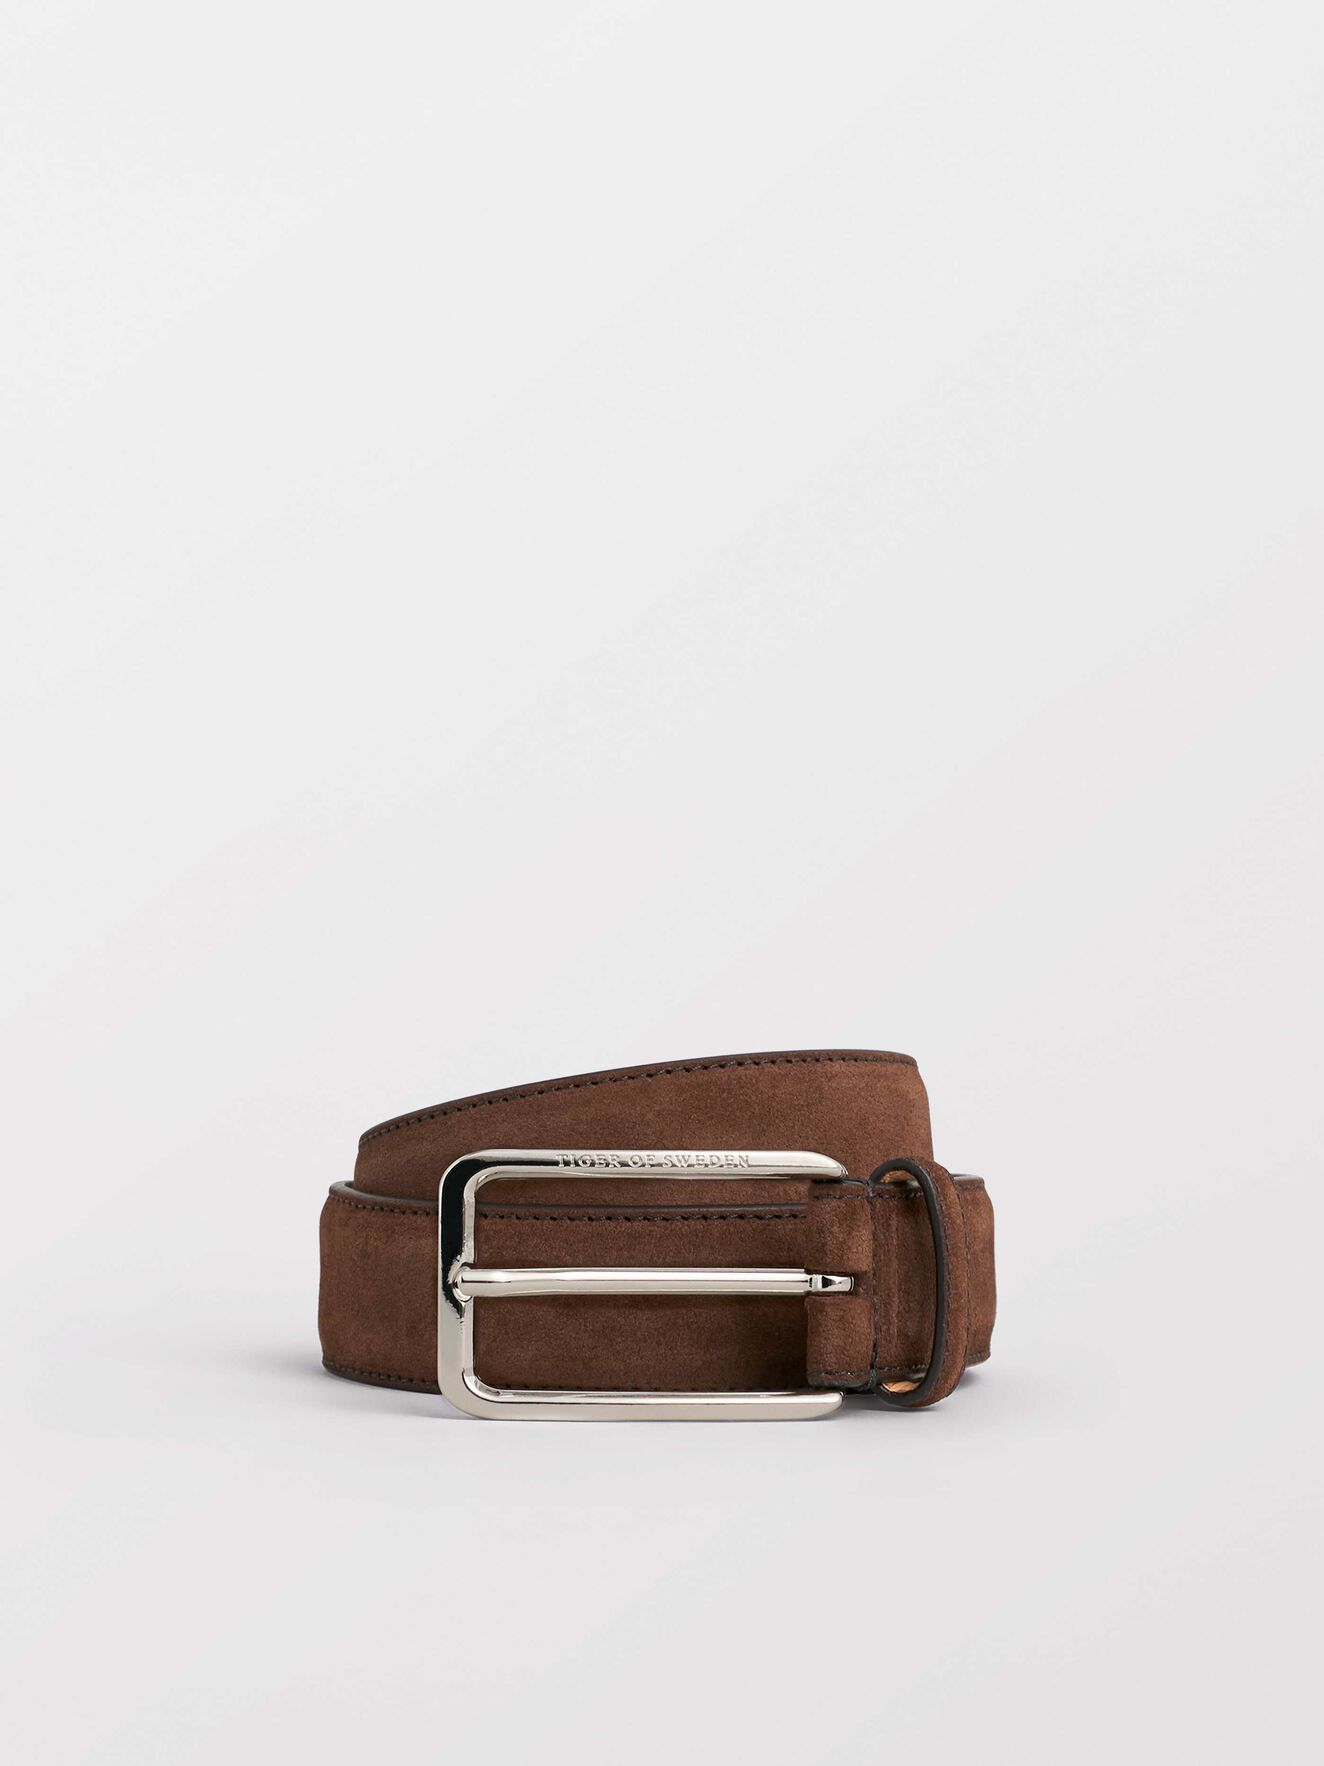 Bulant S Belt in Cognac from Tiger of Sweden